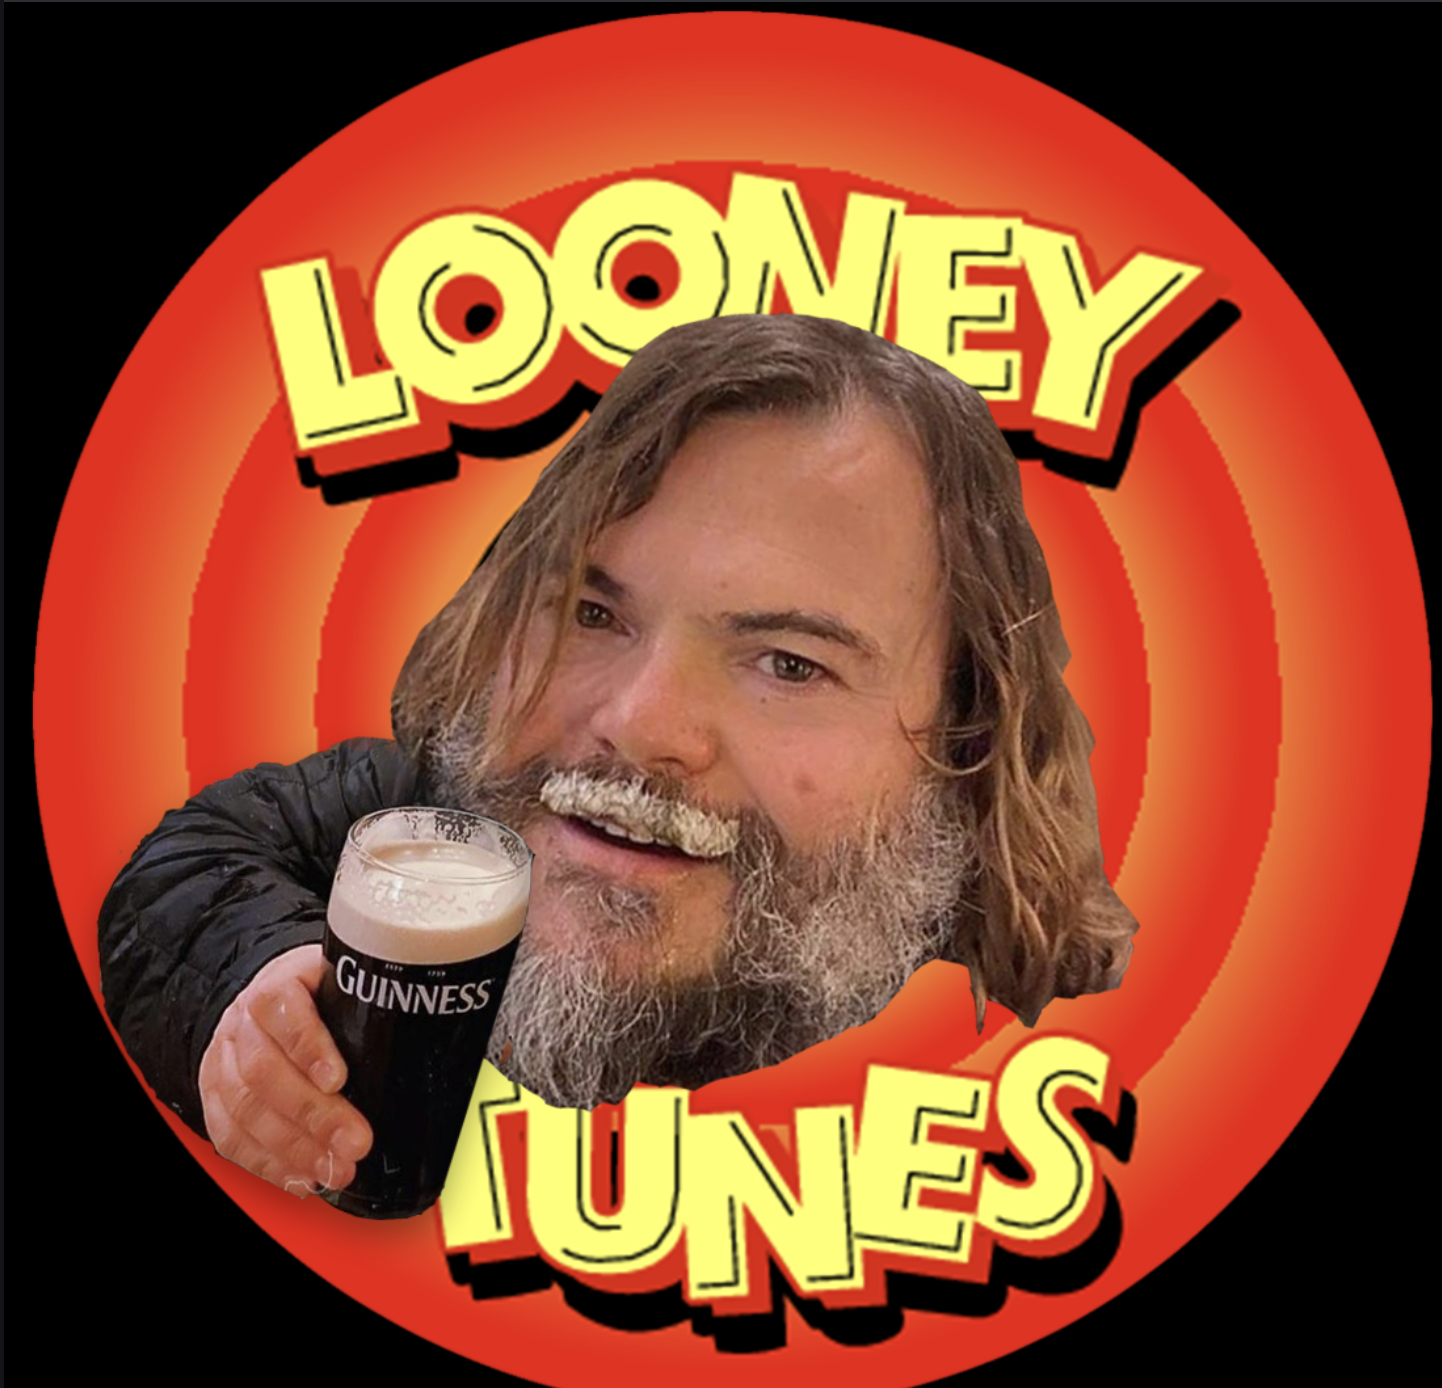 photoshop version of Jack Black's pic